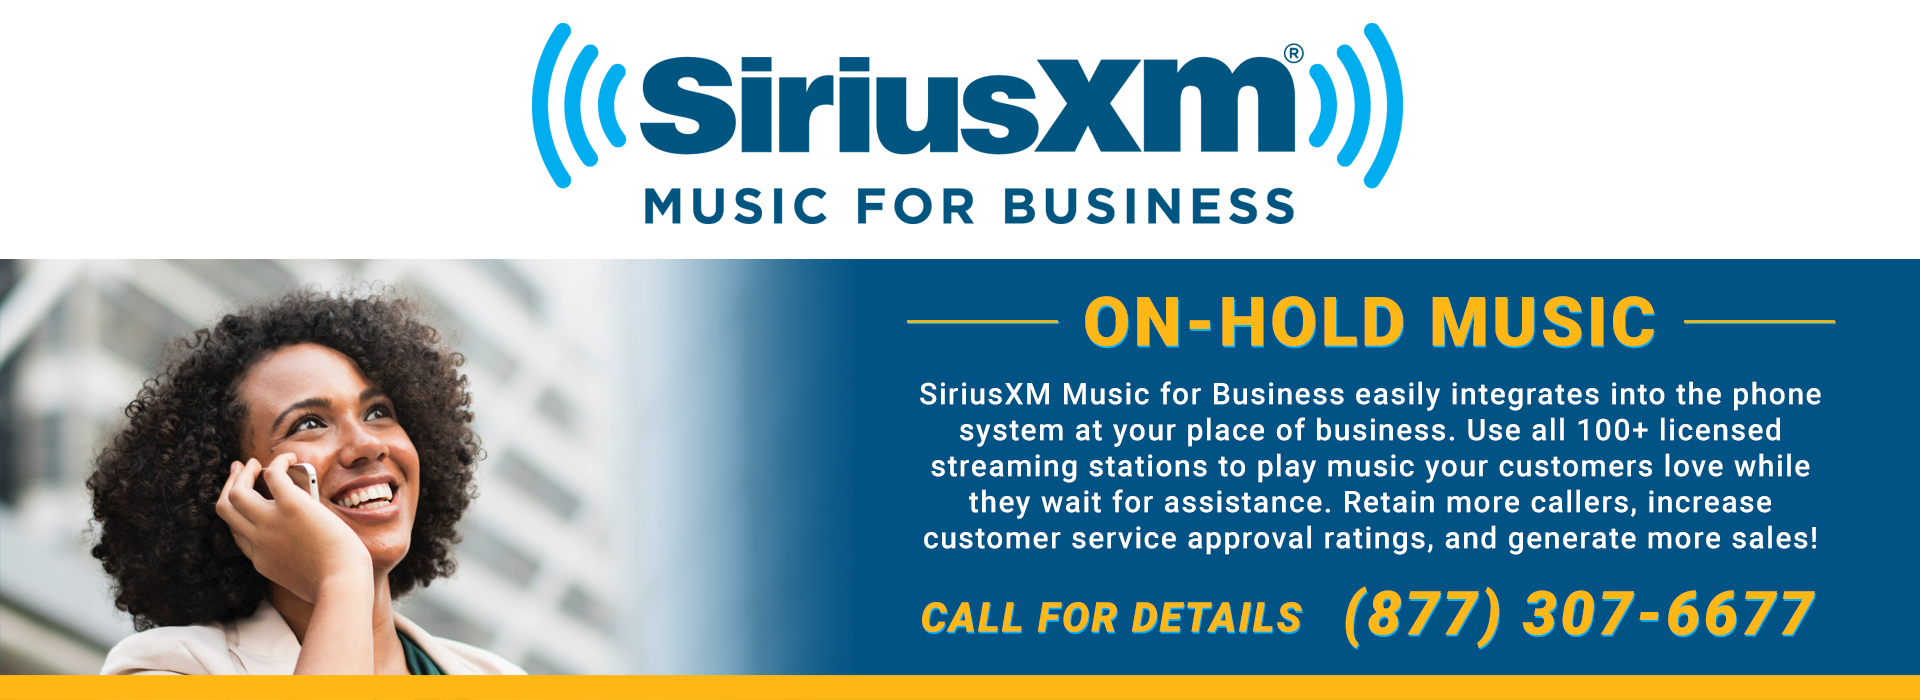 SiriusXM-Music-for-Business-On-Hold-Music-Sonu-Media